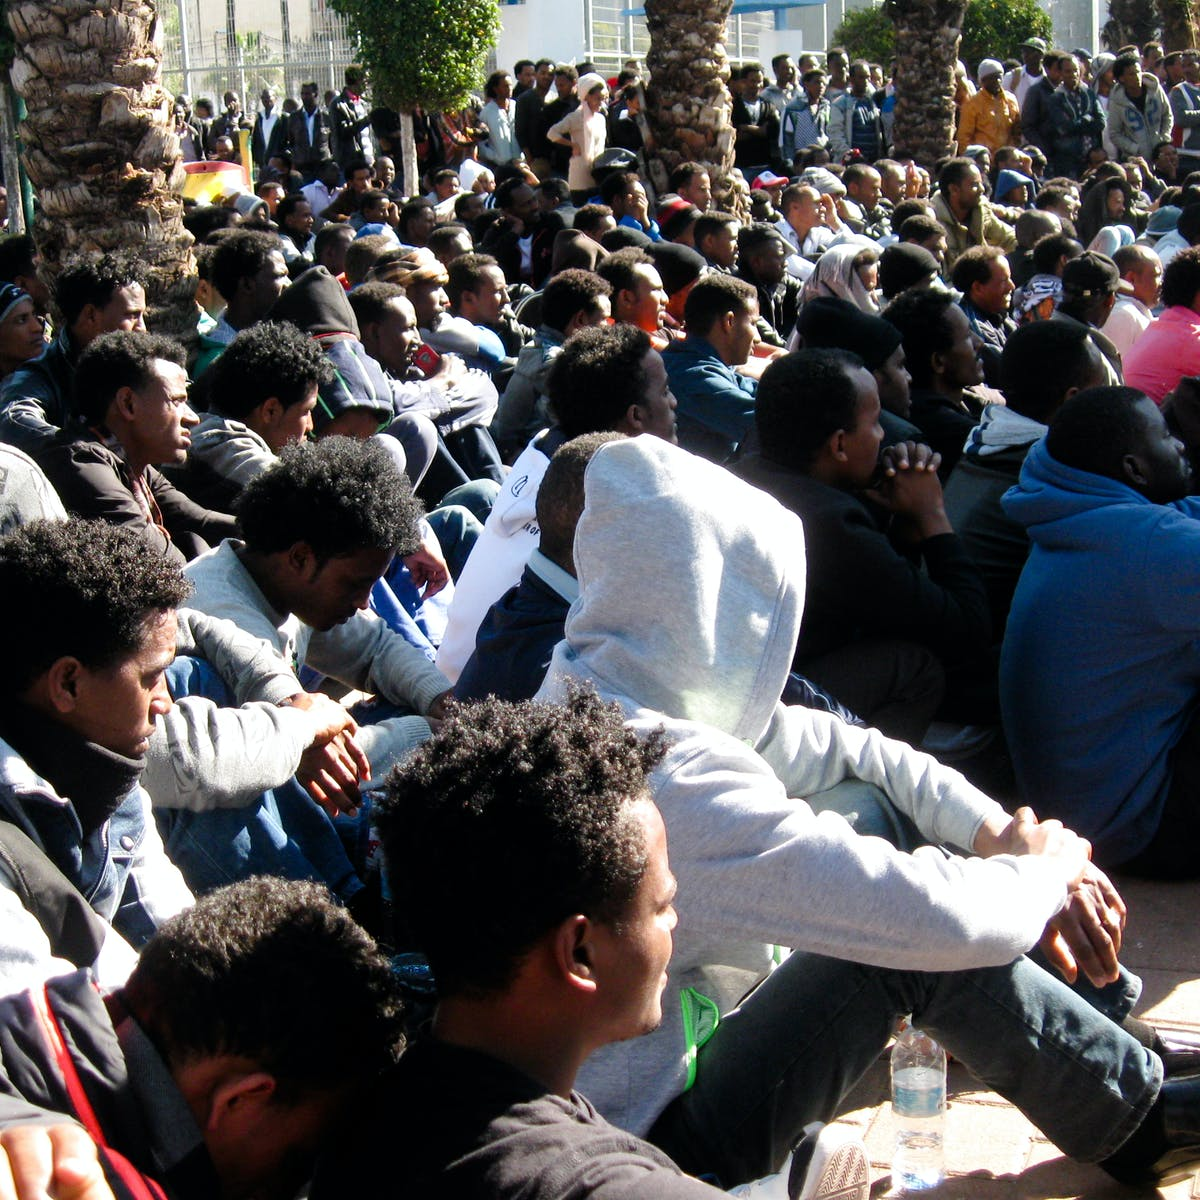 Eritrea has slashed conscription  Will it stem the flow of refugees?